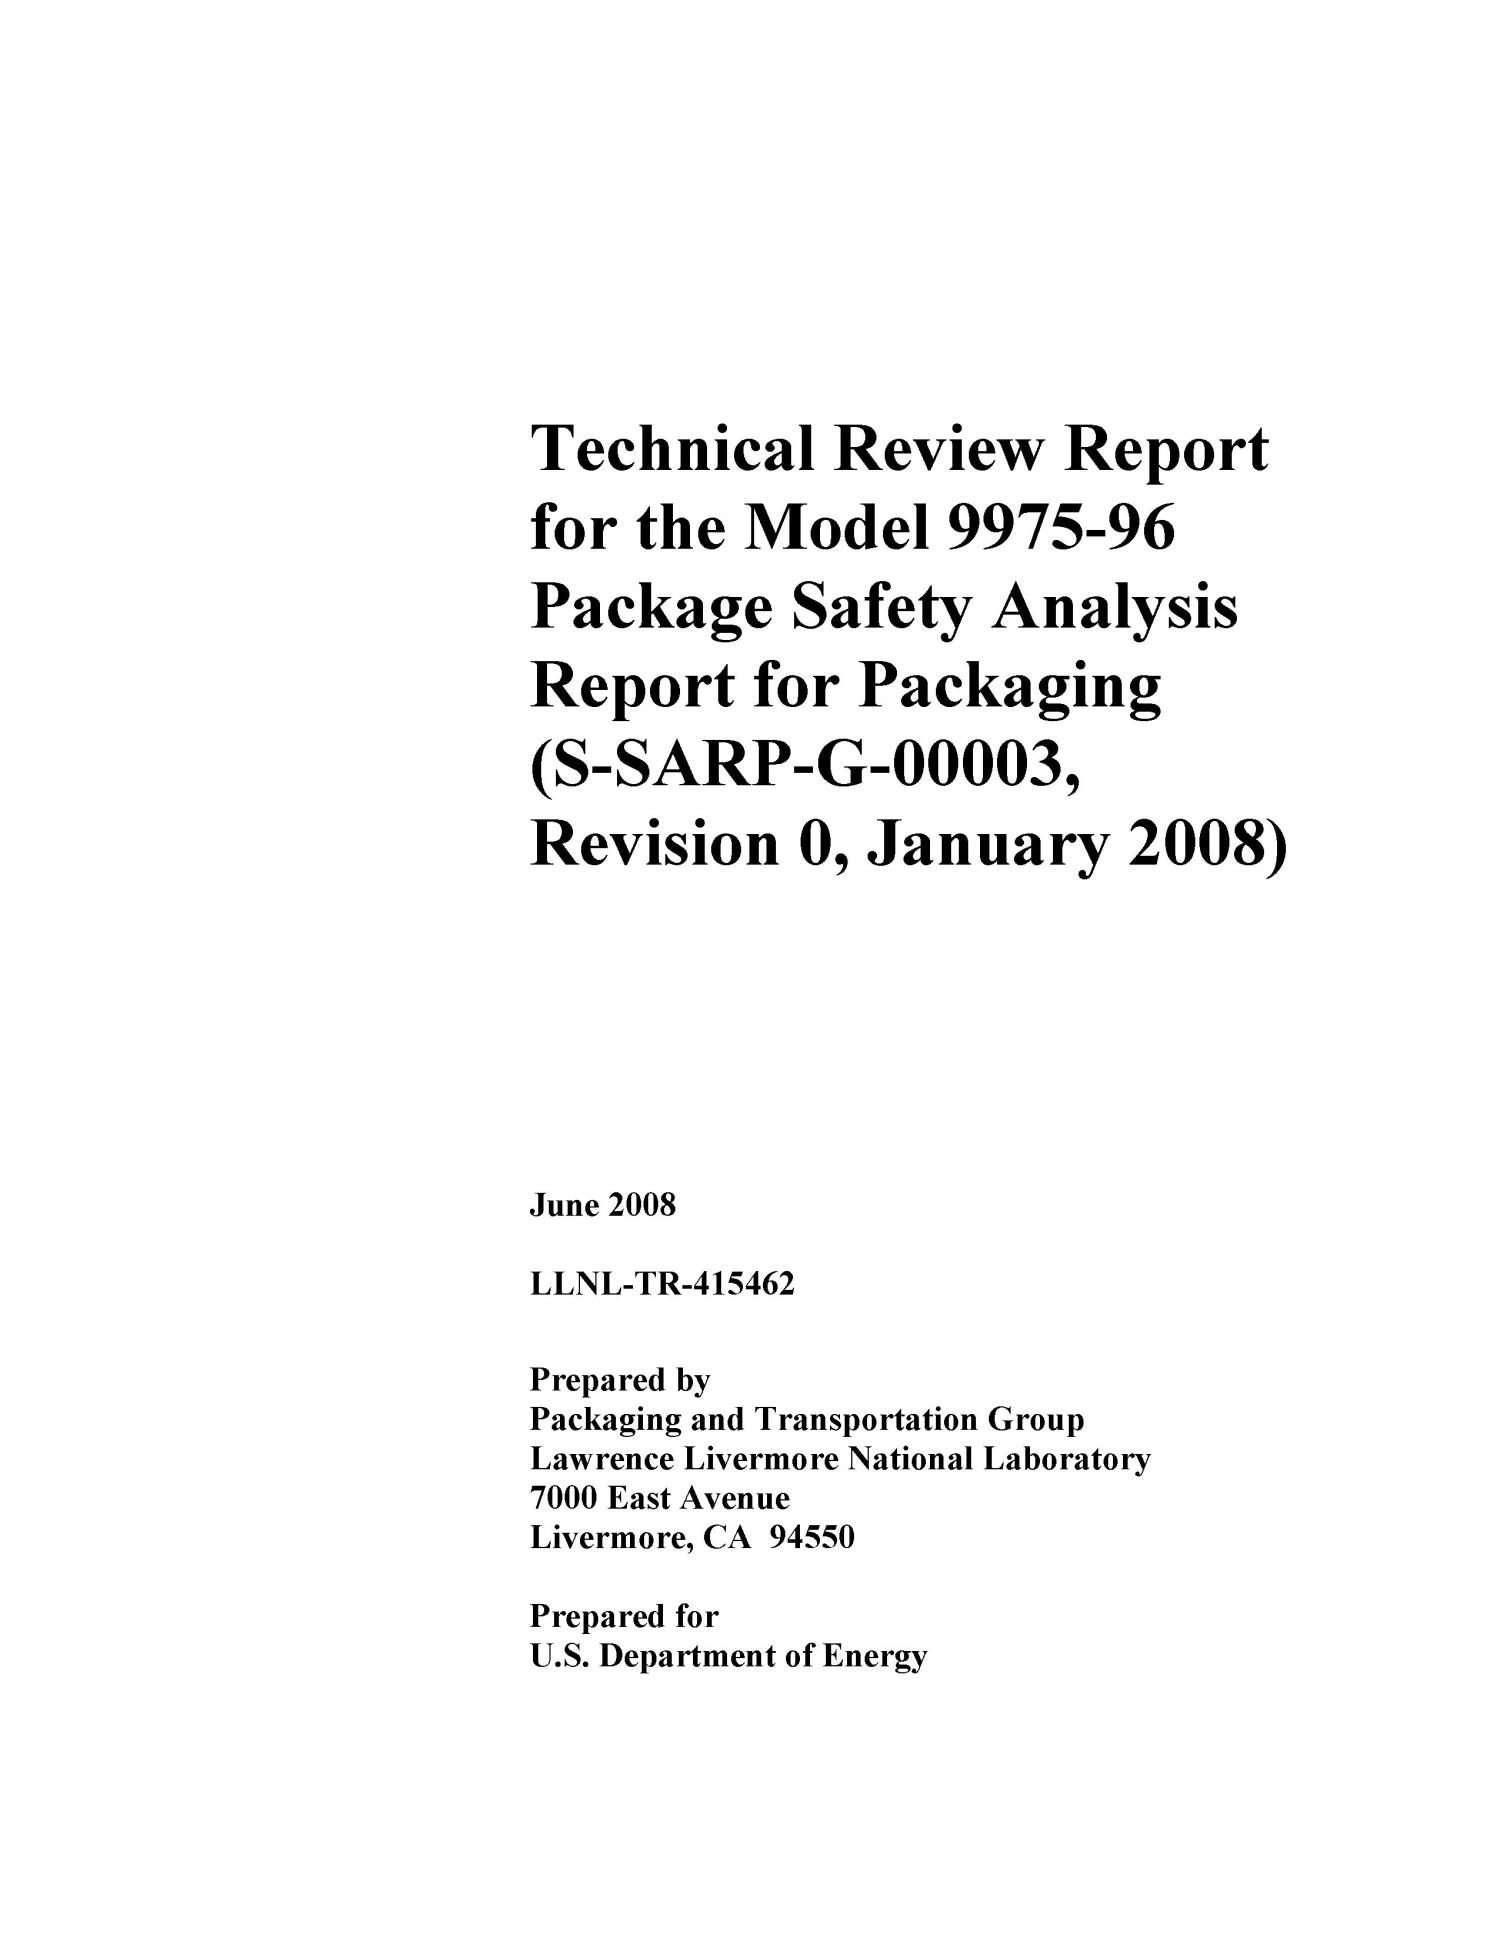 Technical Review Report for the Model 9975-96 Package Safety Analysis Report for Packaging (S-SARP-G-00003, Revision 0, January 2008)                                                                                                      [Sequence #]: 3 of 115